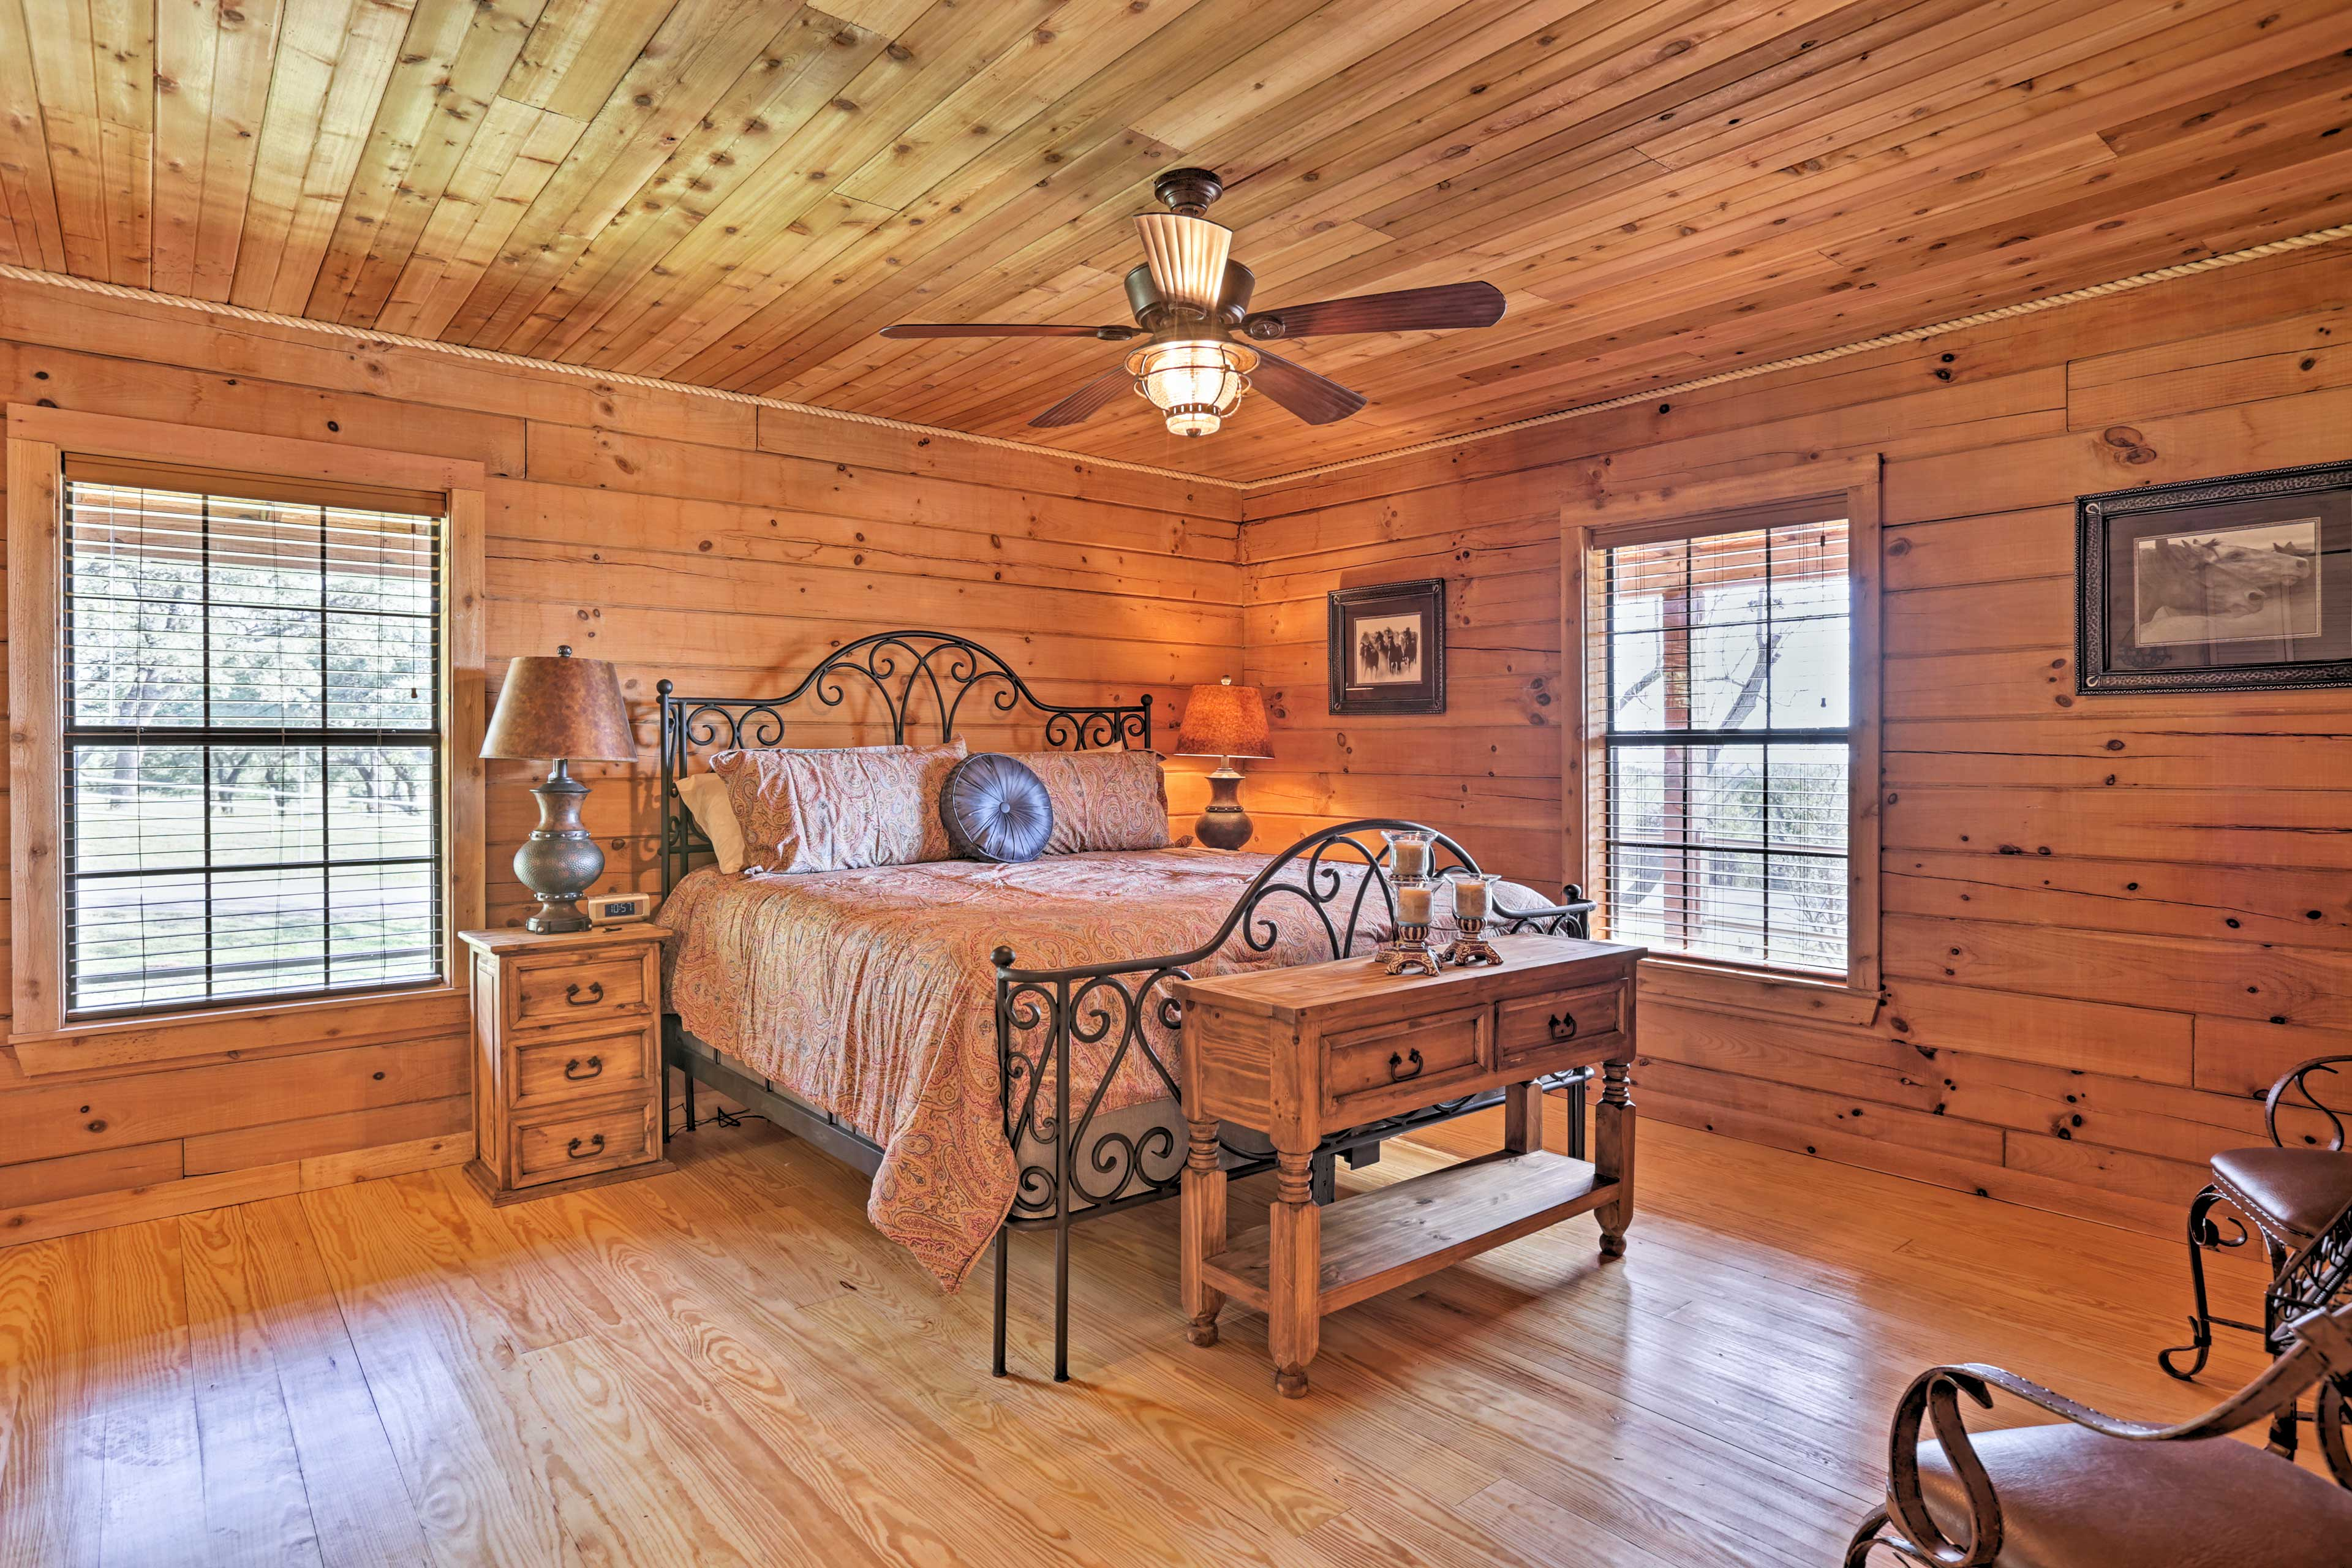 Each bedroom awaits with Texas-inspired bedding comfortable mattresses